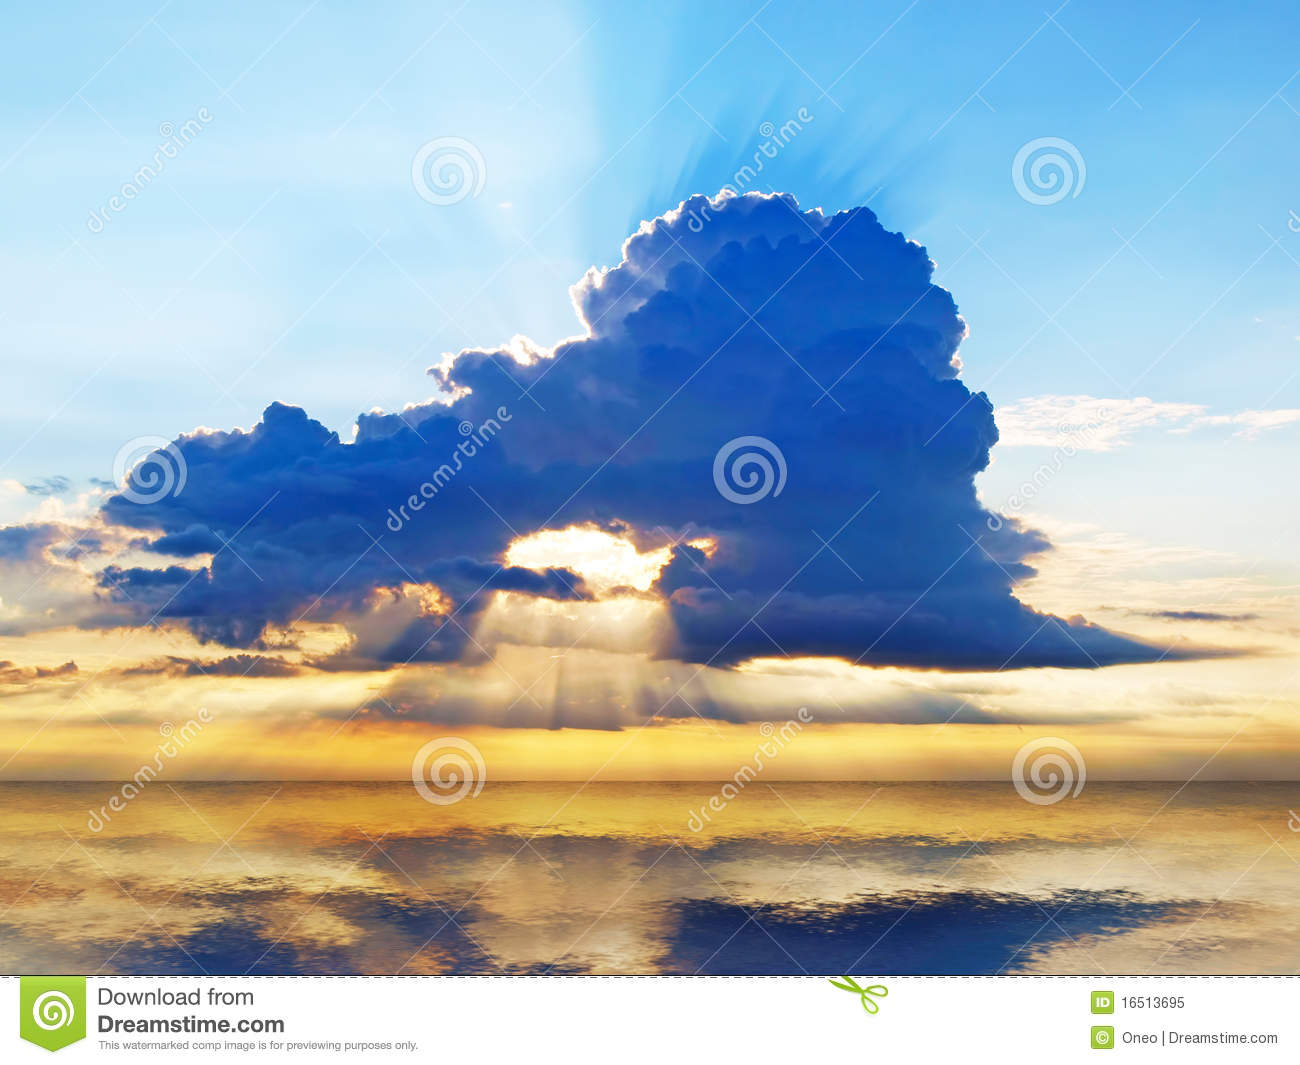 Bright sunset sky with stormy clouds